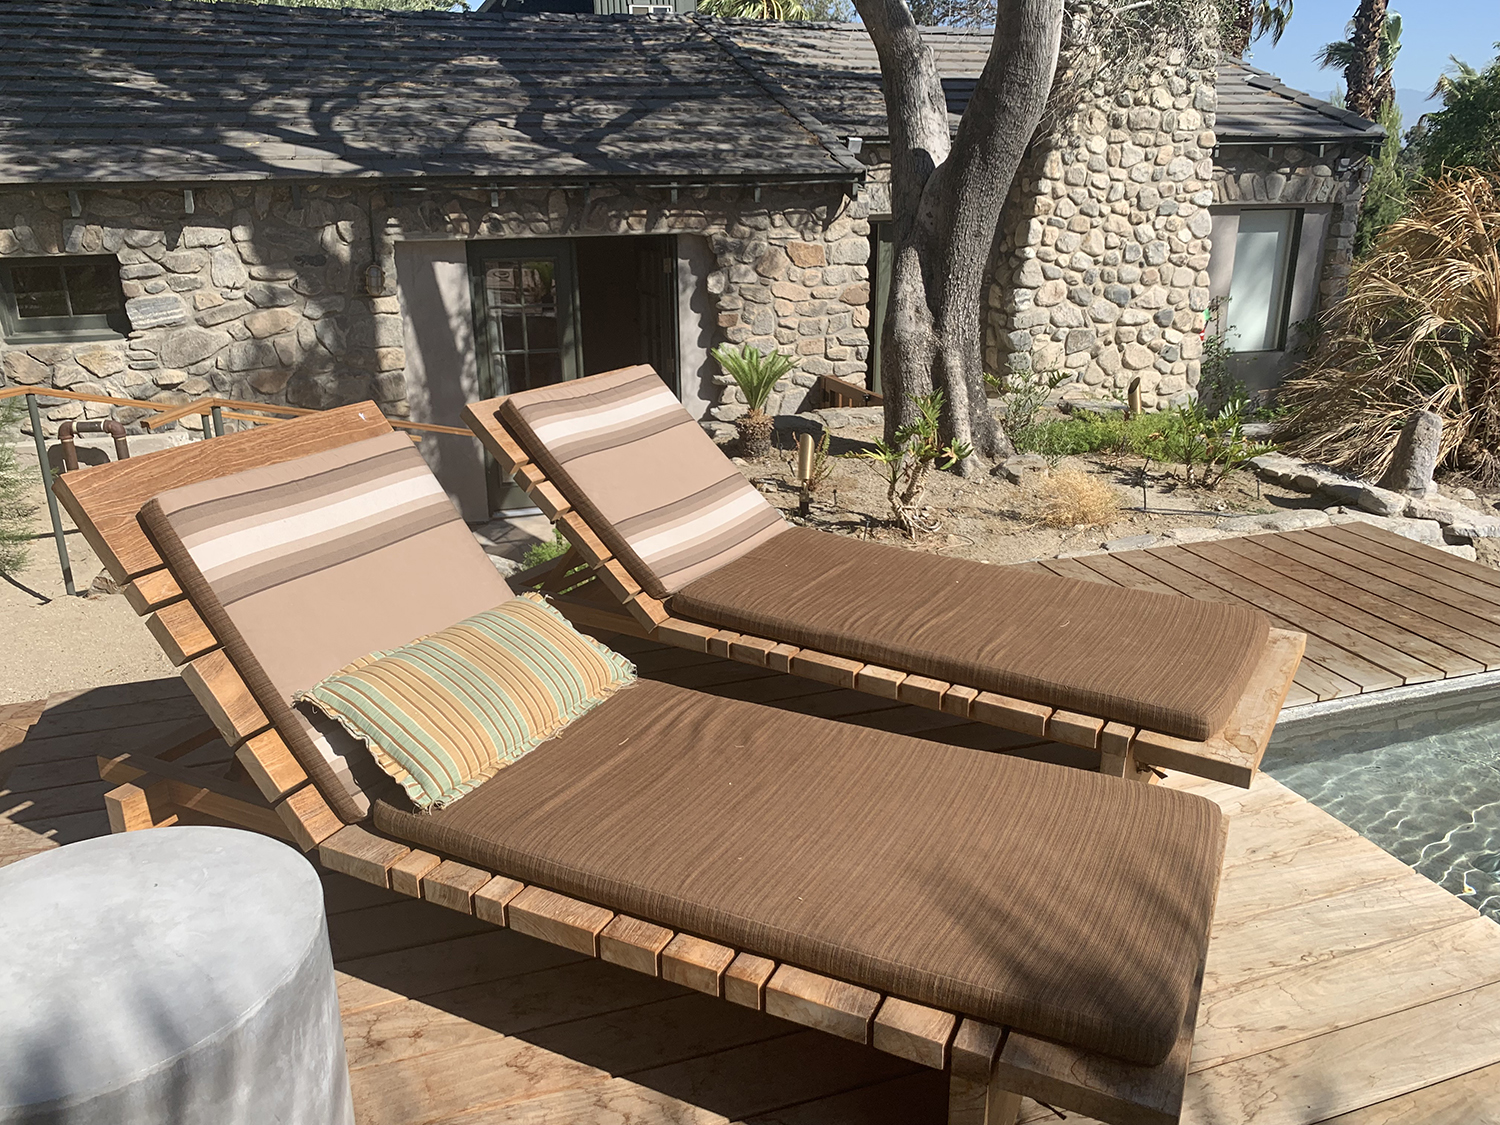 Relaxing lounge chairs on the deck.